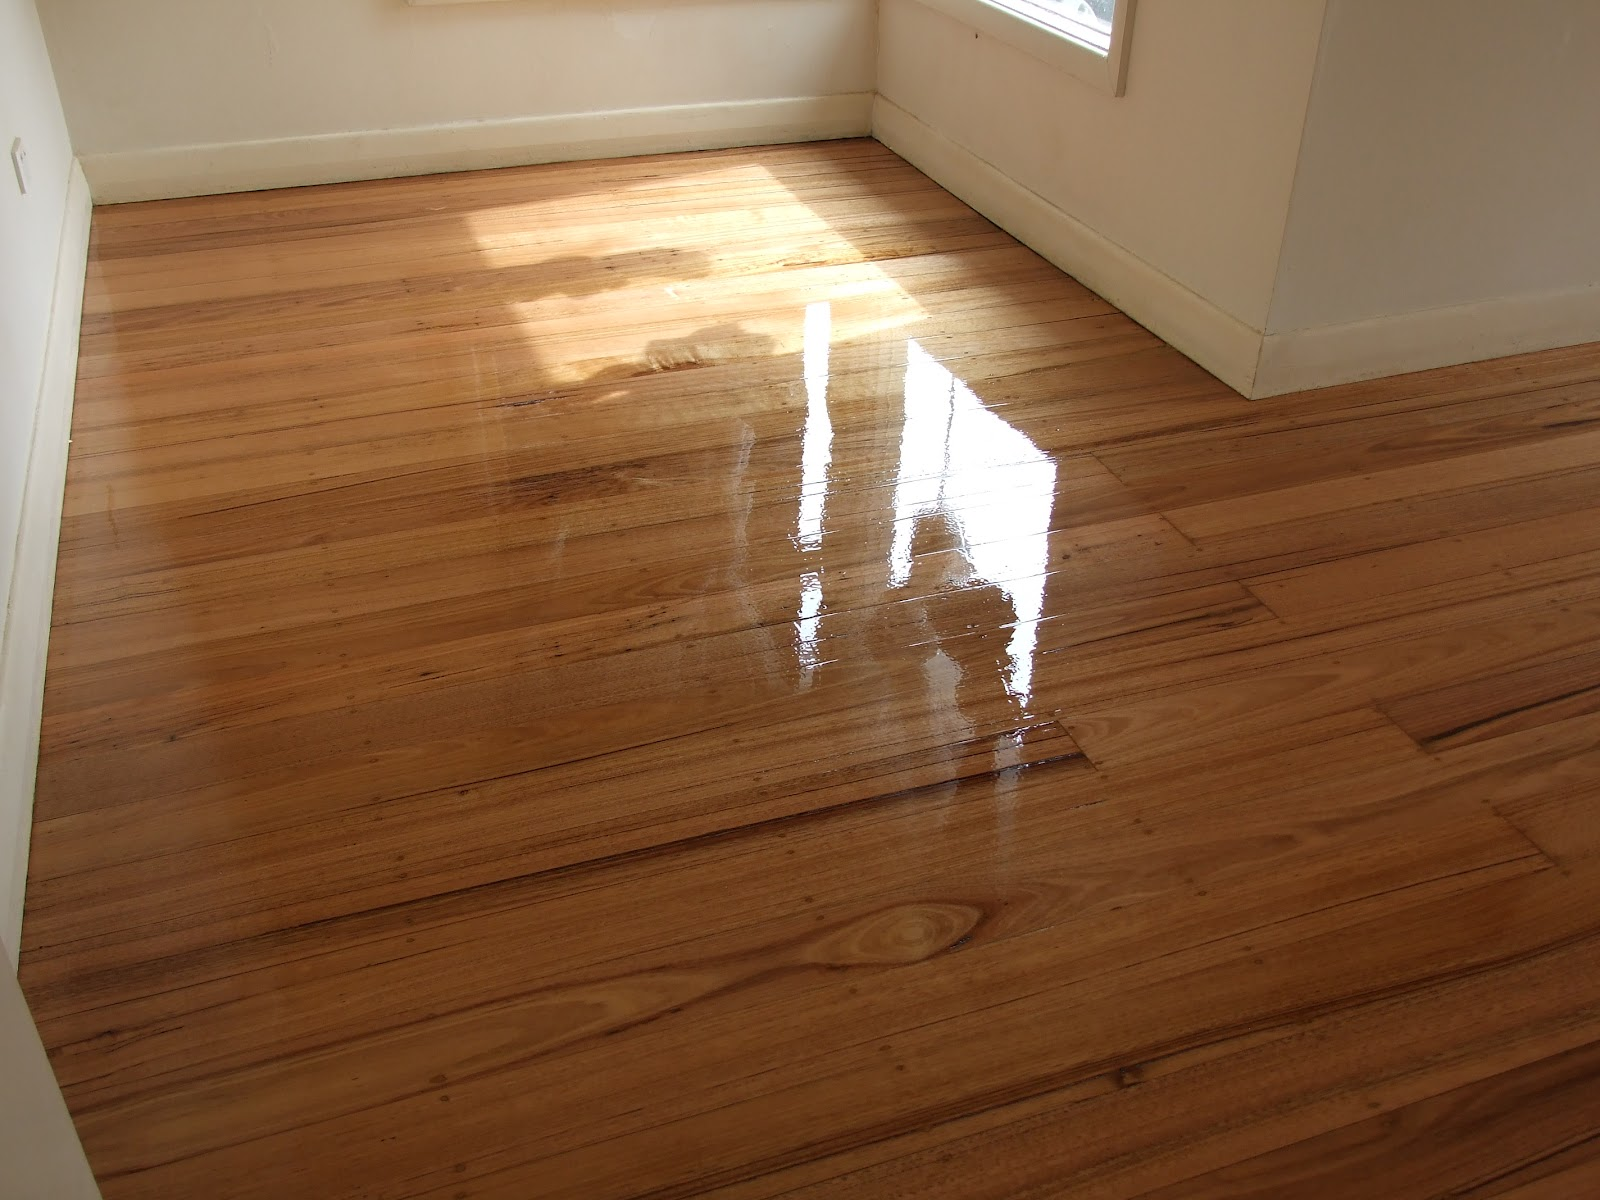 Hardwood floor finishes flooring ideas home for Hardwood floor finishes